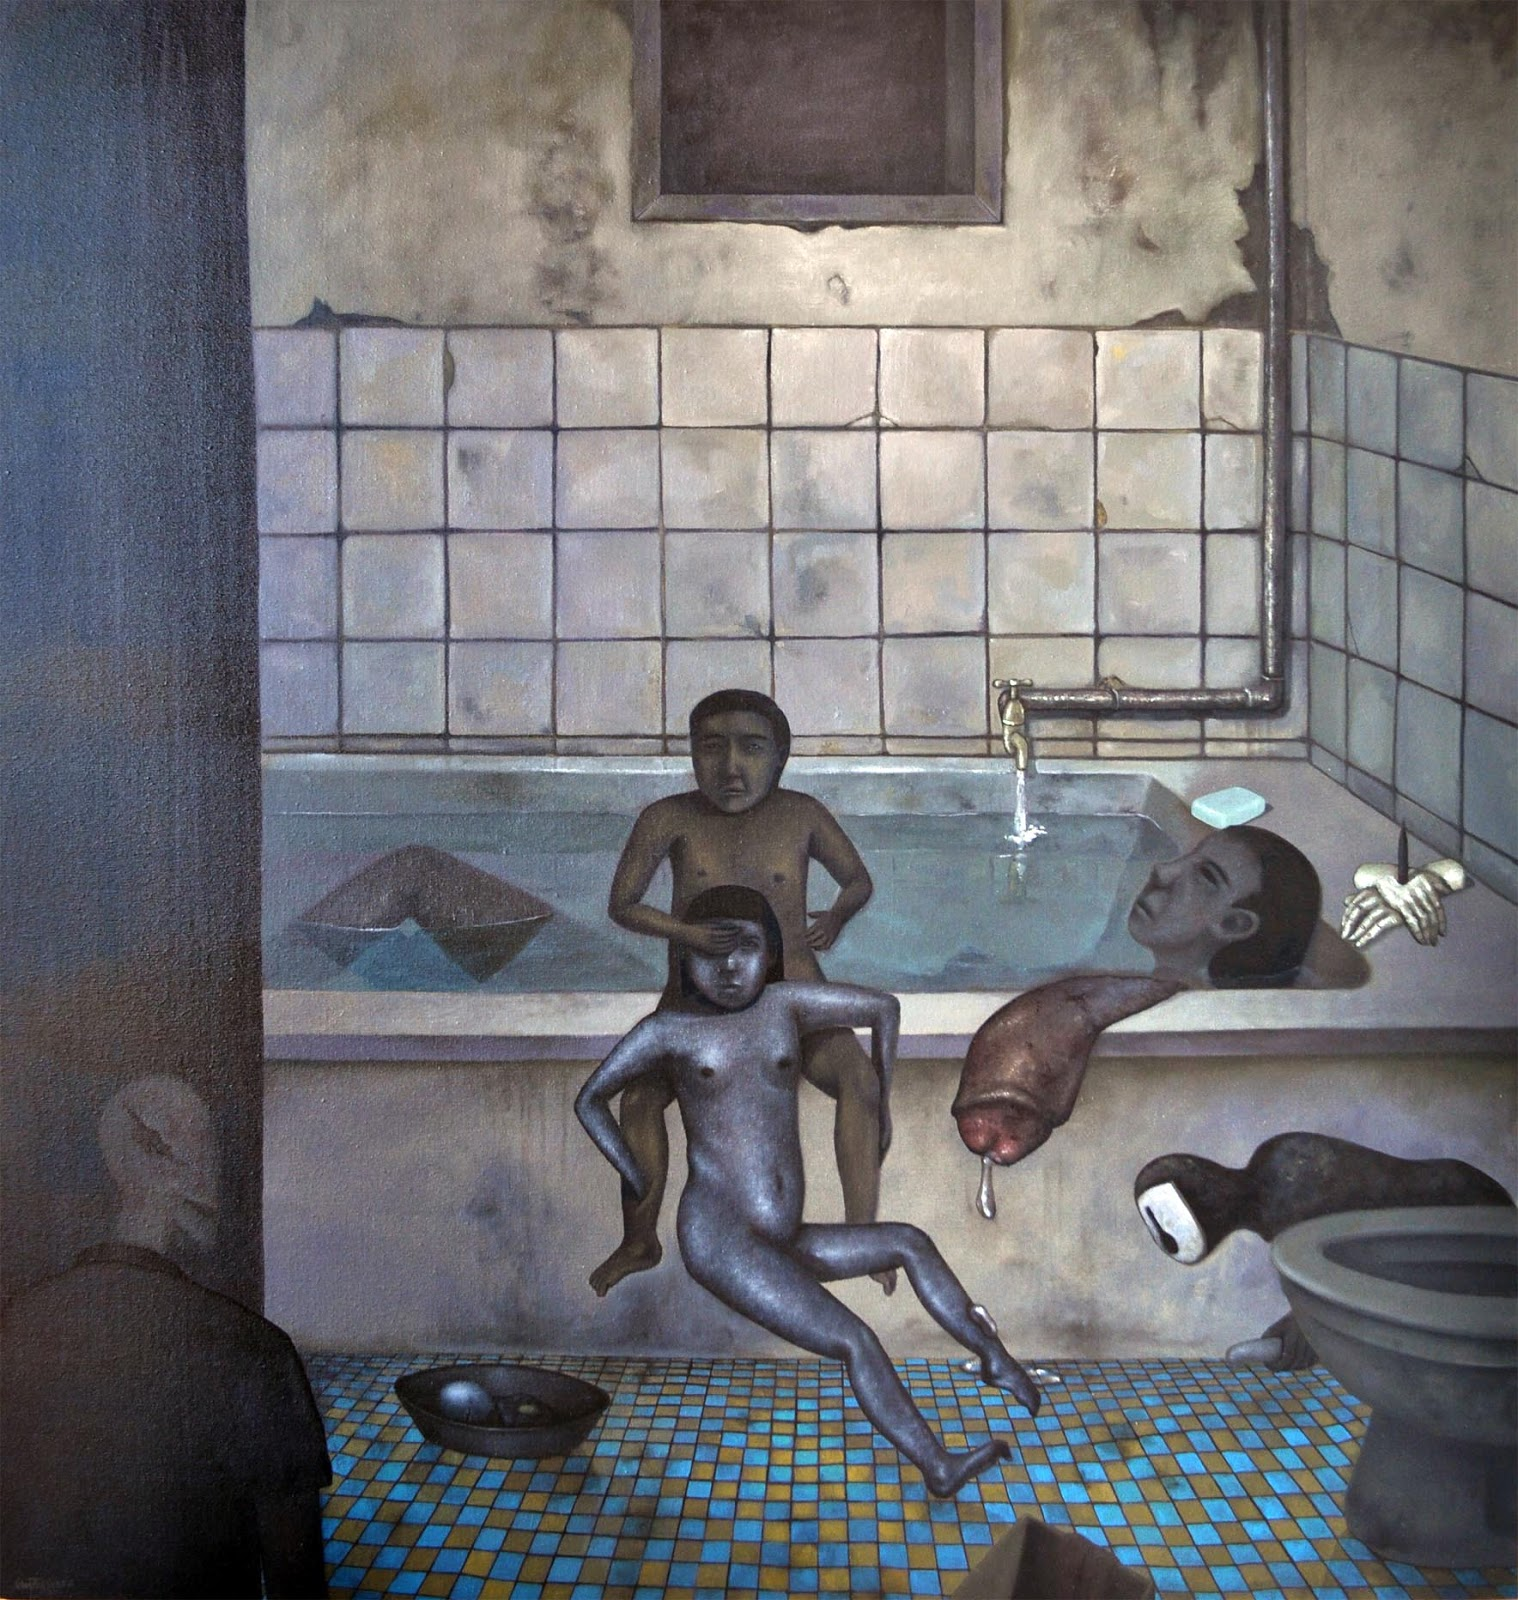 Bathroom21525 X 147cm Oil On Canvas2011 Bathroom